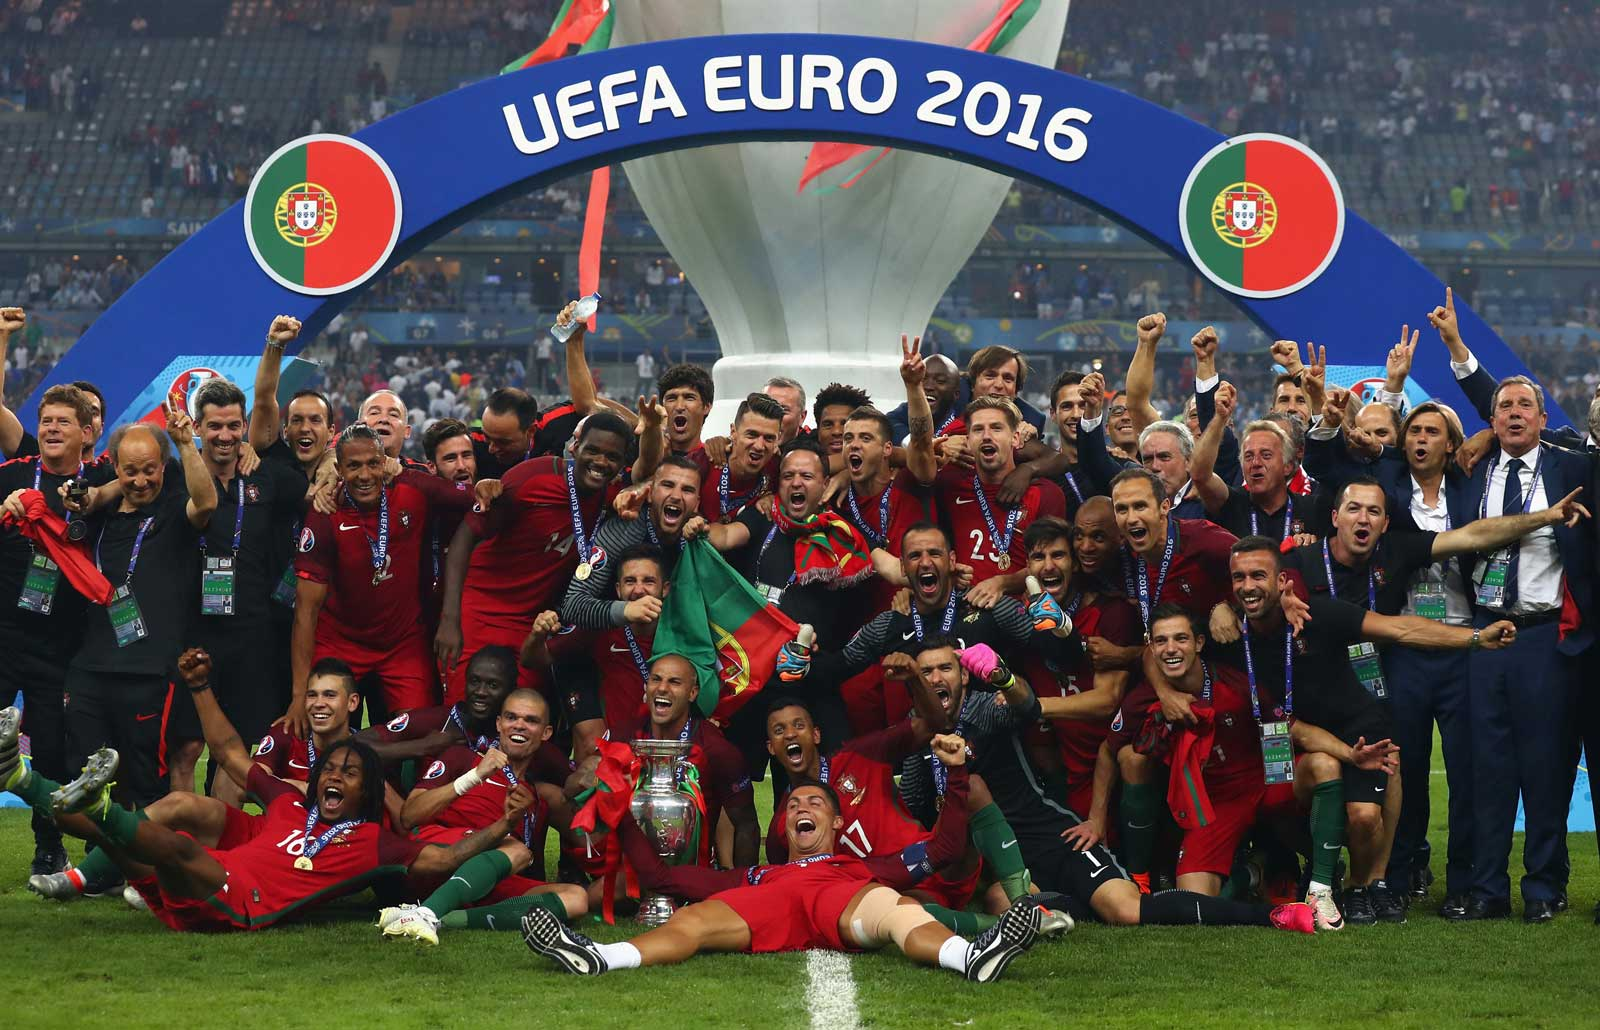 portugal-euro-2016-winners-shirt-1